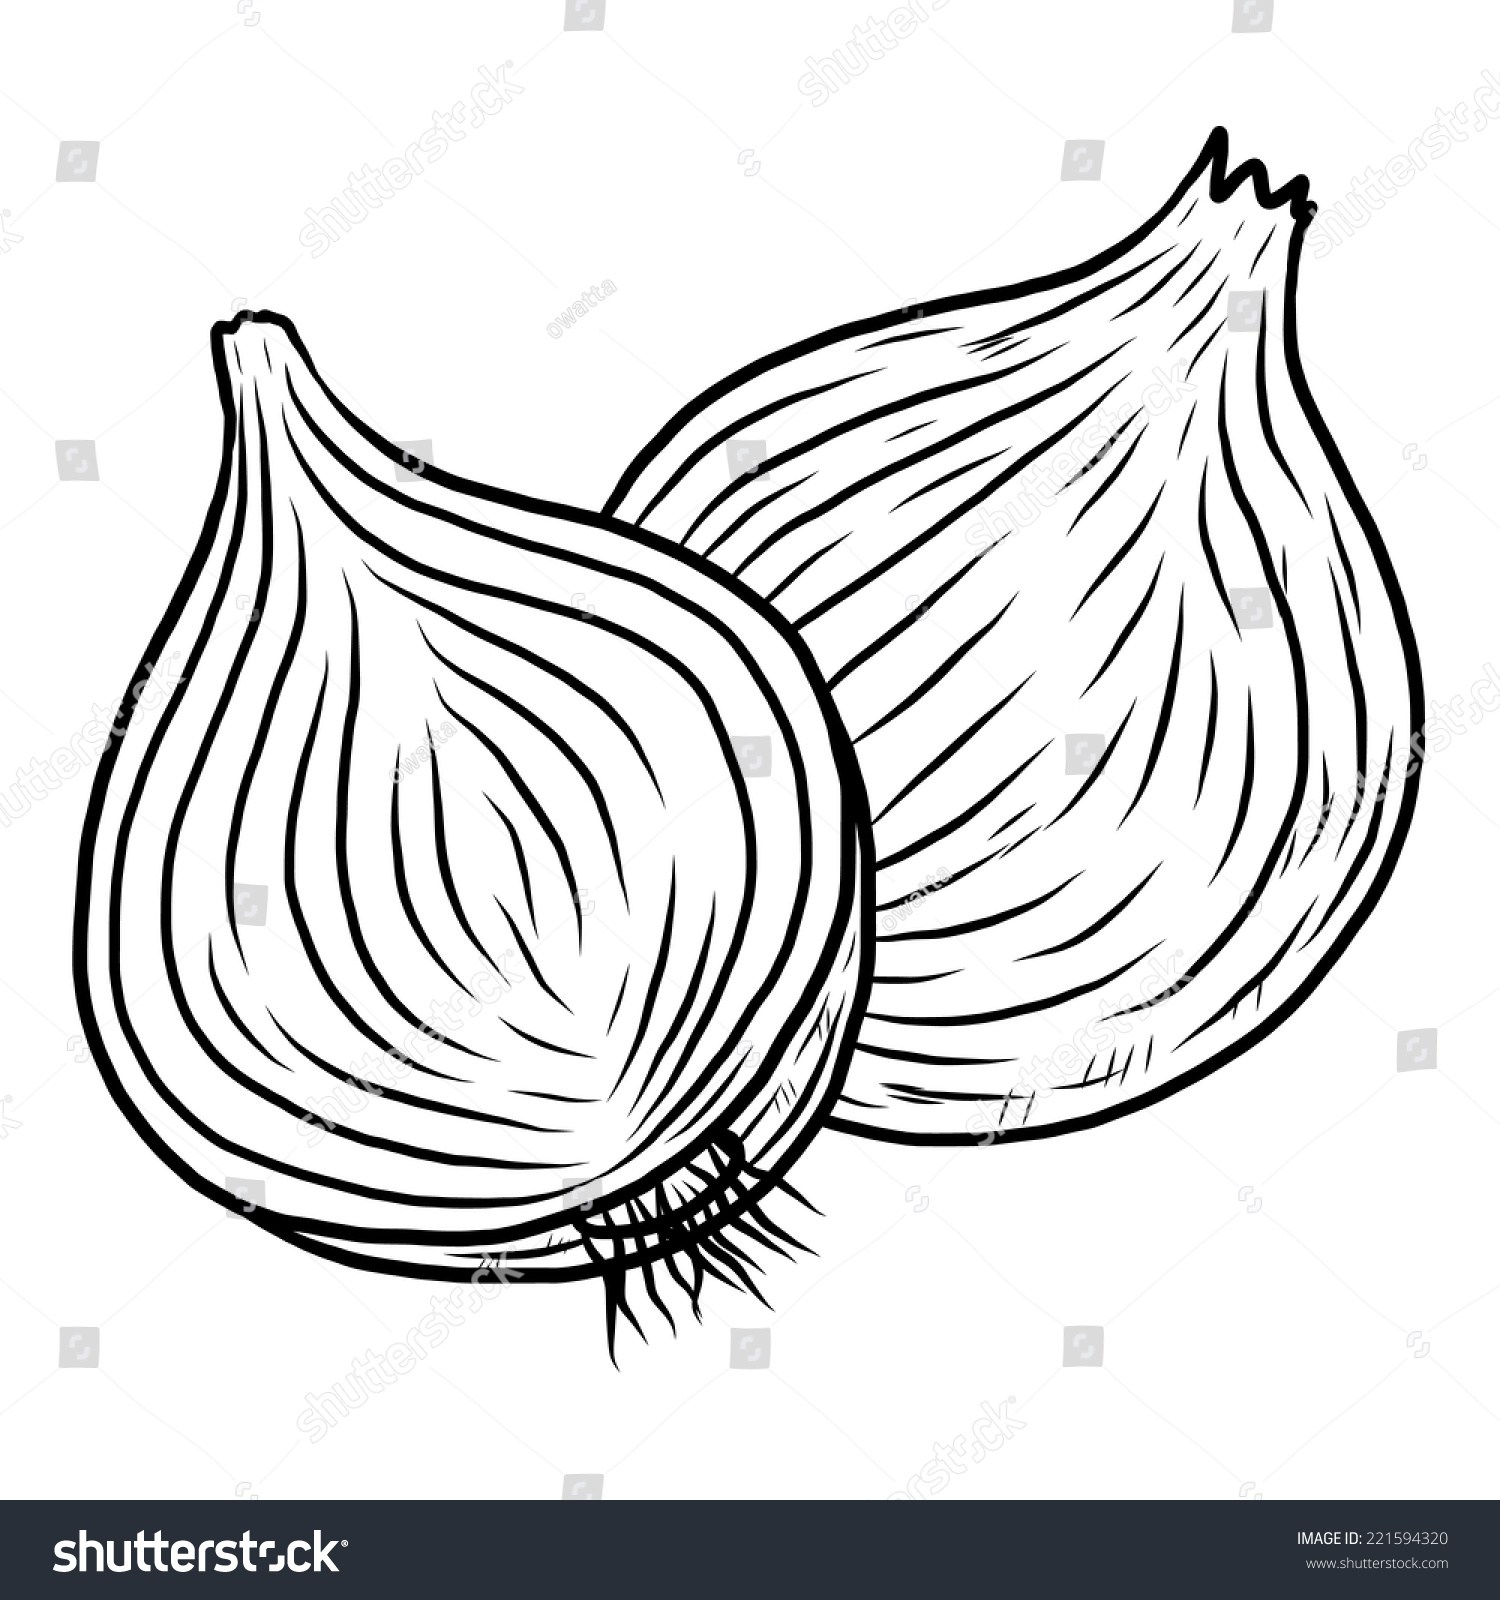 Onion black and white clipart 4 » Clipart Portal.